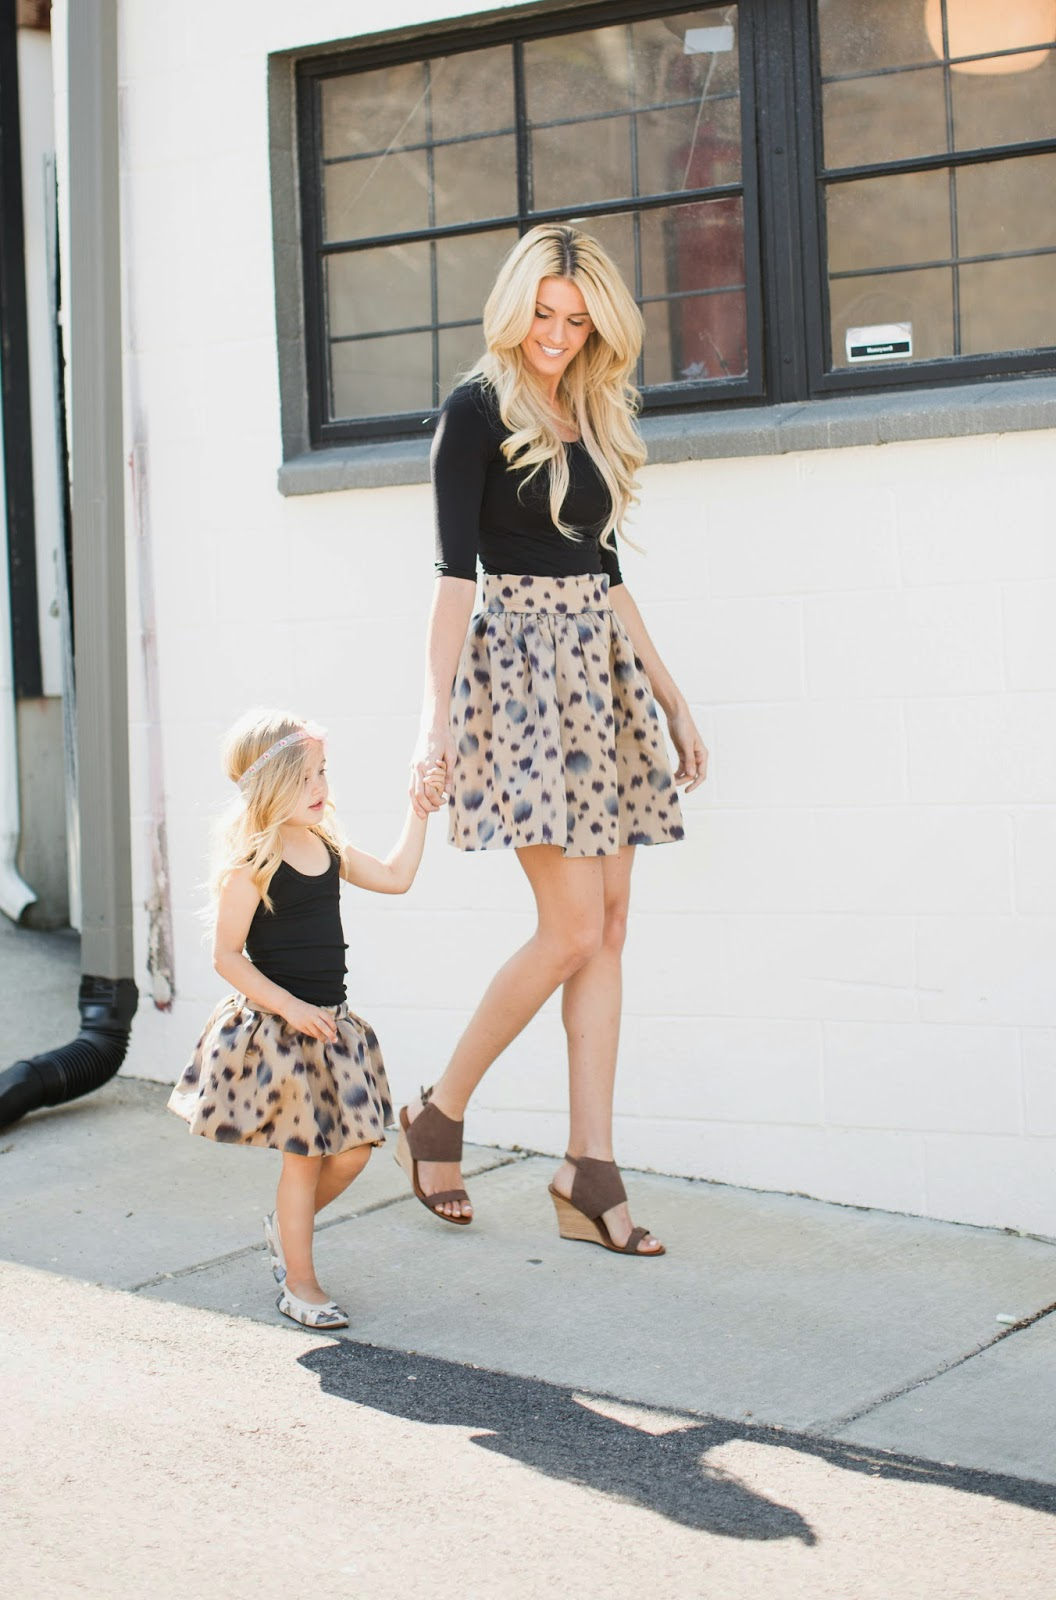 Fashion for young moms